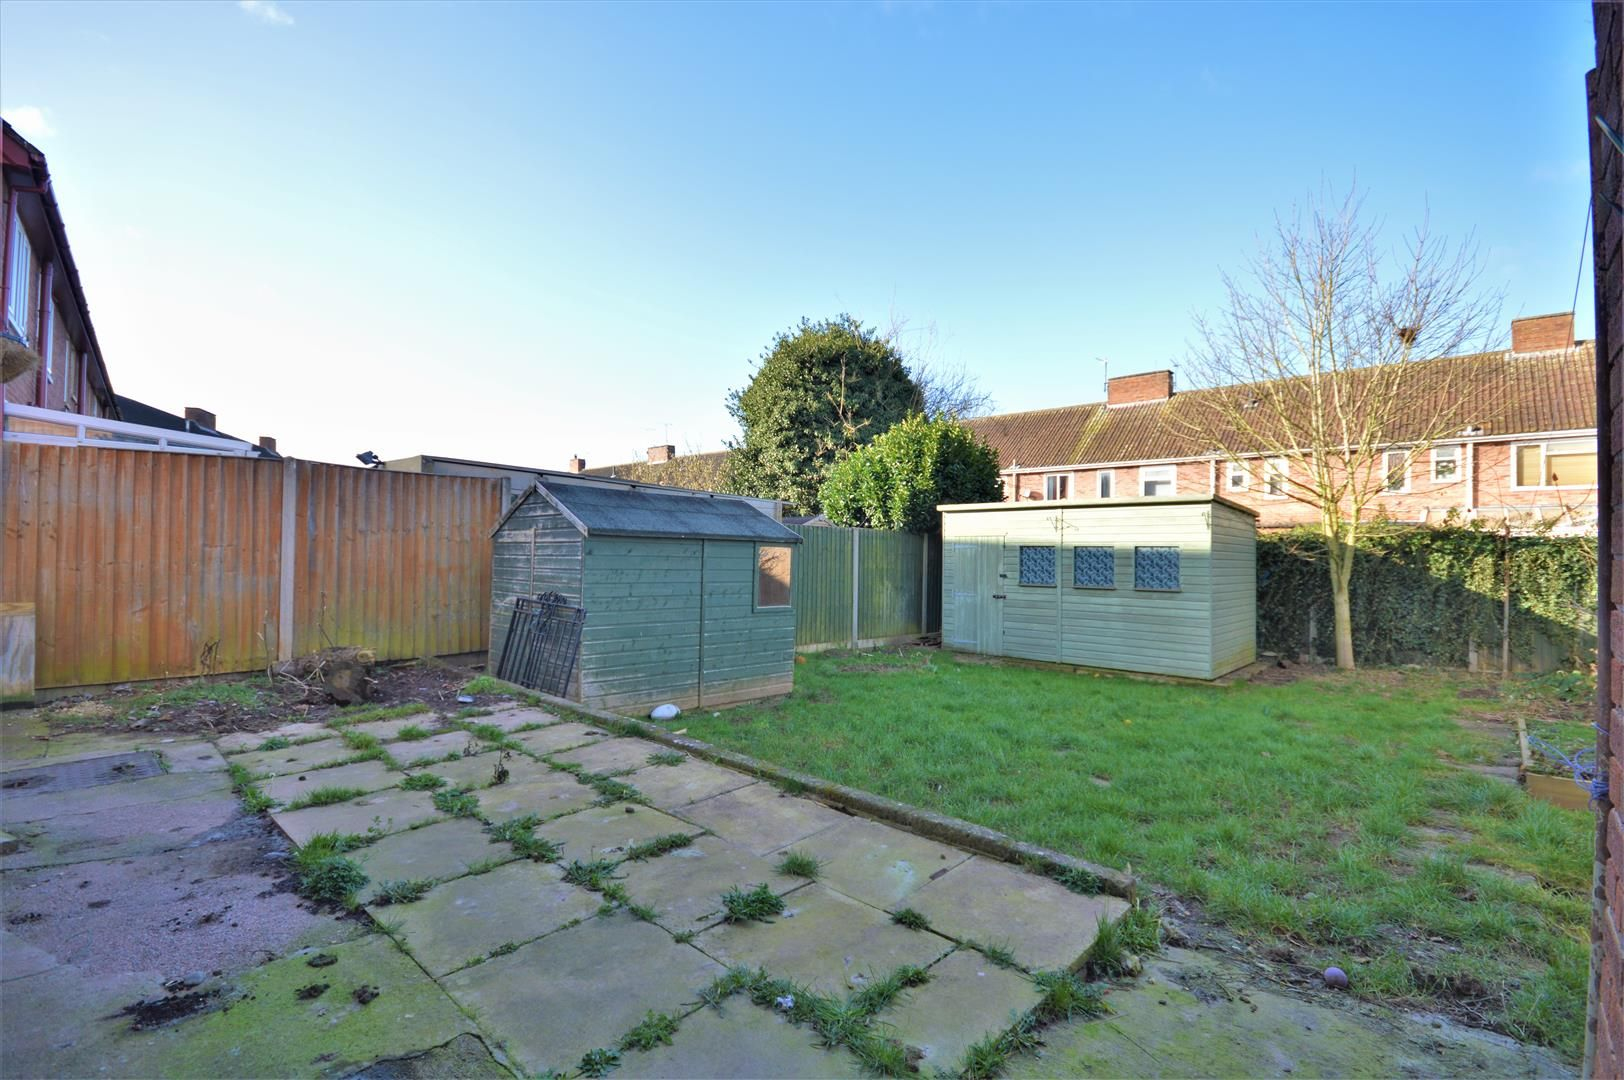 3 bed end-of-terrace for sale in Hereford 14